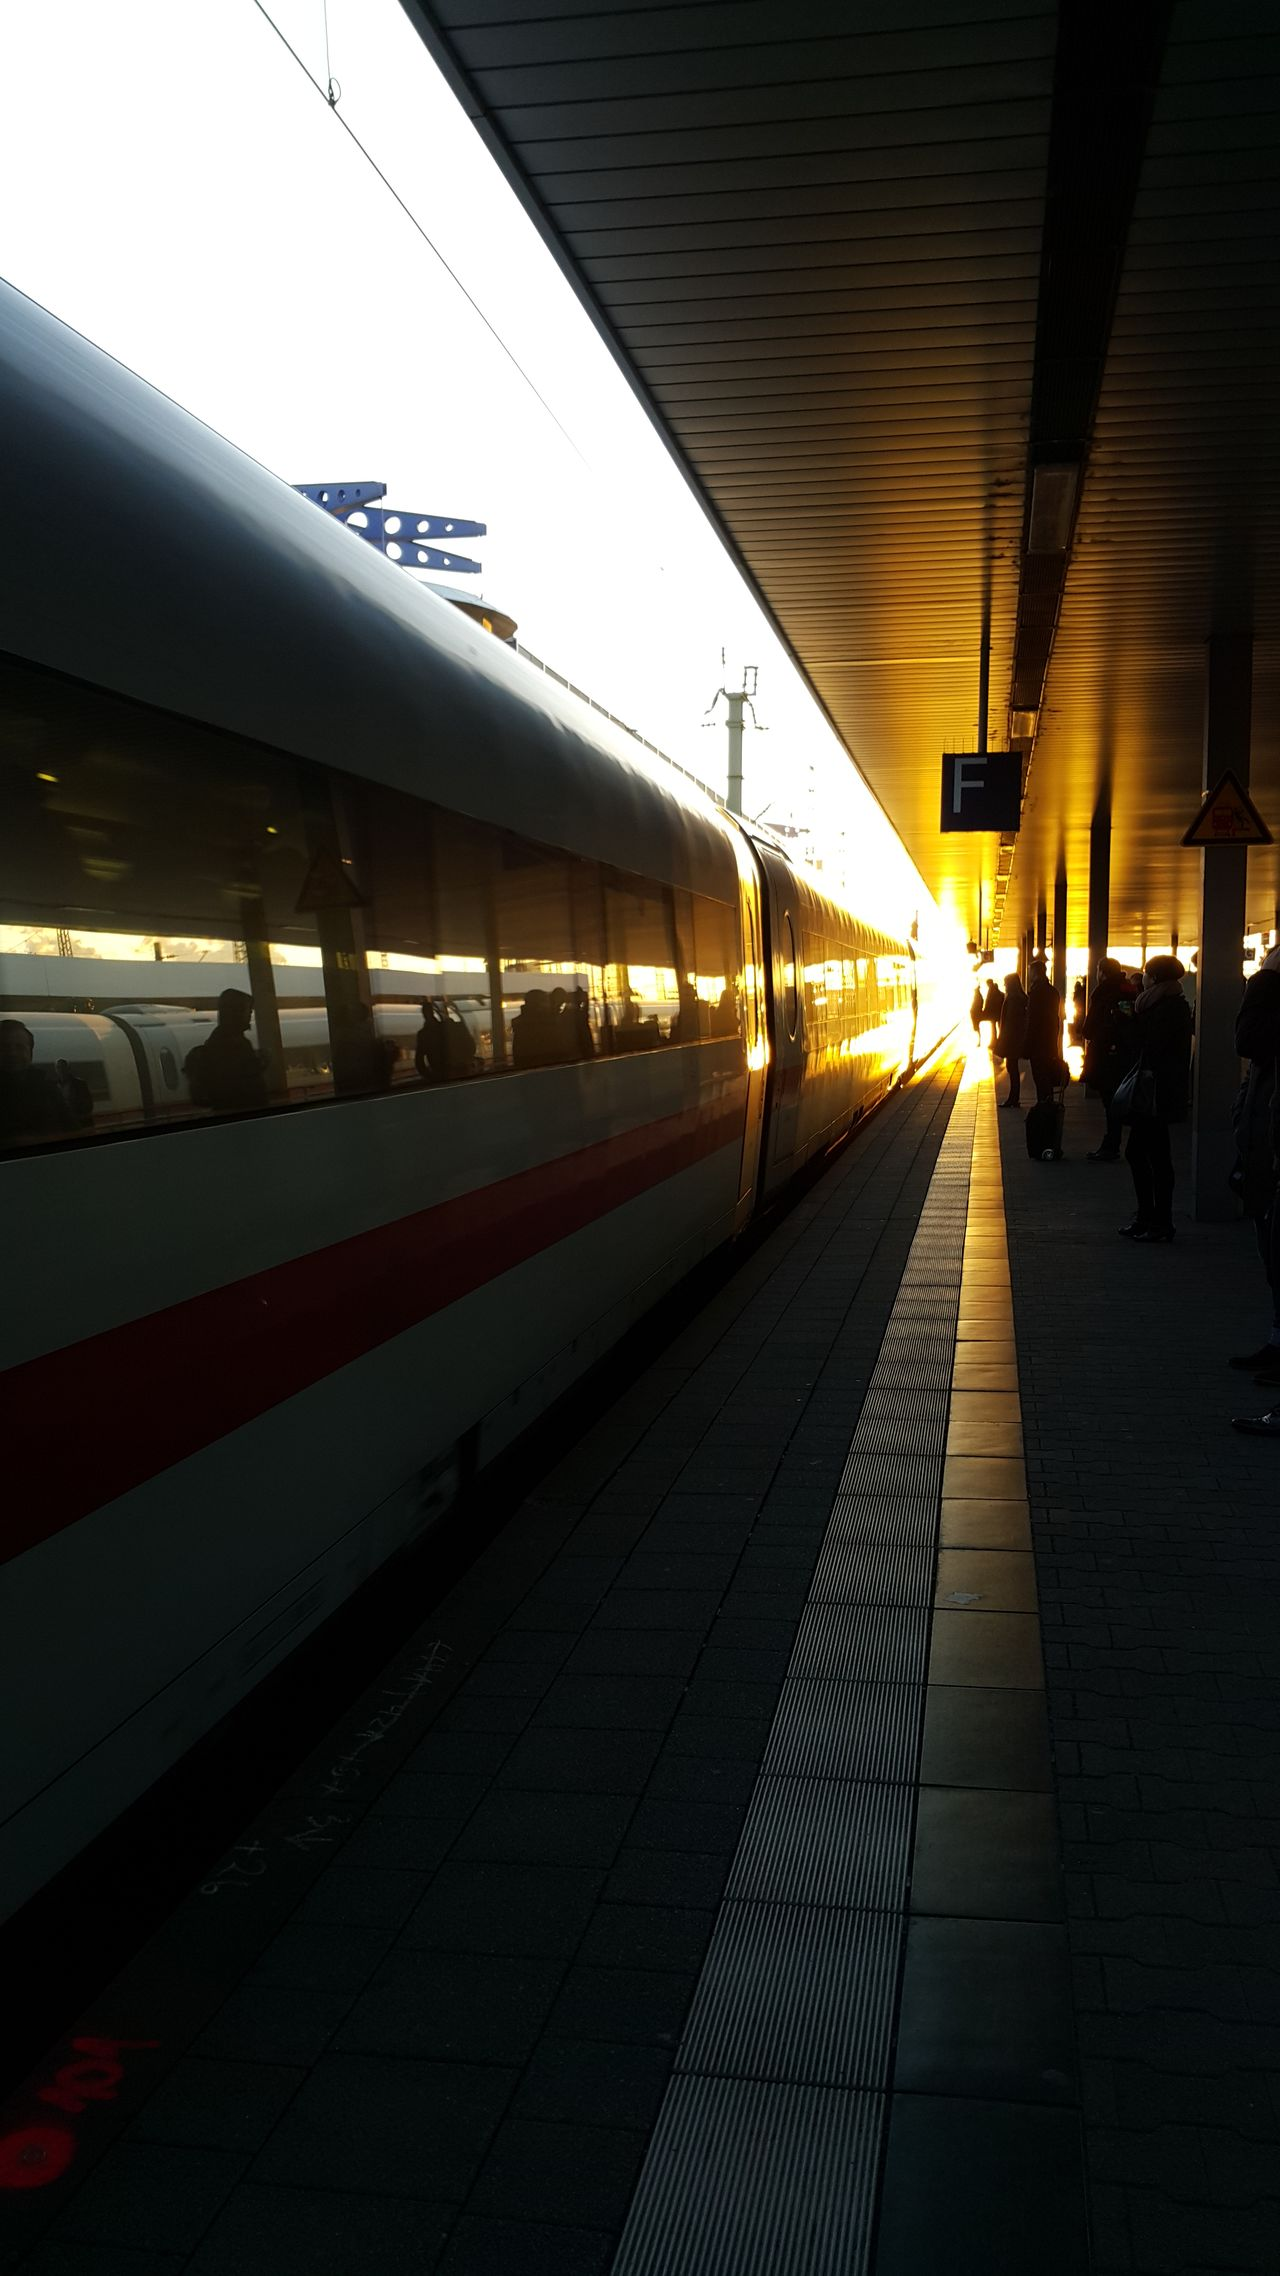 Transportation The Way Forward Illuminated Railroad Station Platform Railroad Station Train Train Station Trainphotography Trainstation Sunset On My Way Home Mannheim On My Way To Work Sunrise In The Morning In The Evening In The Morning Light In The Evening Sun